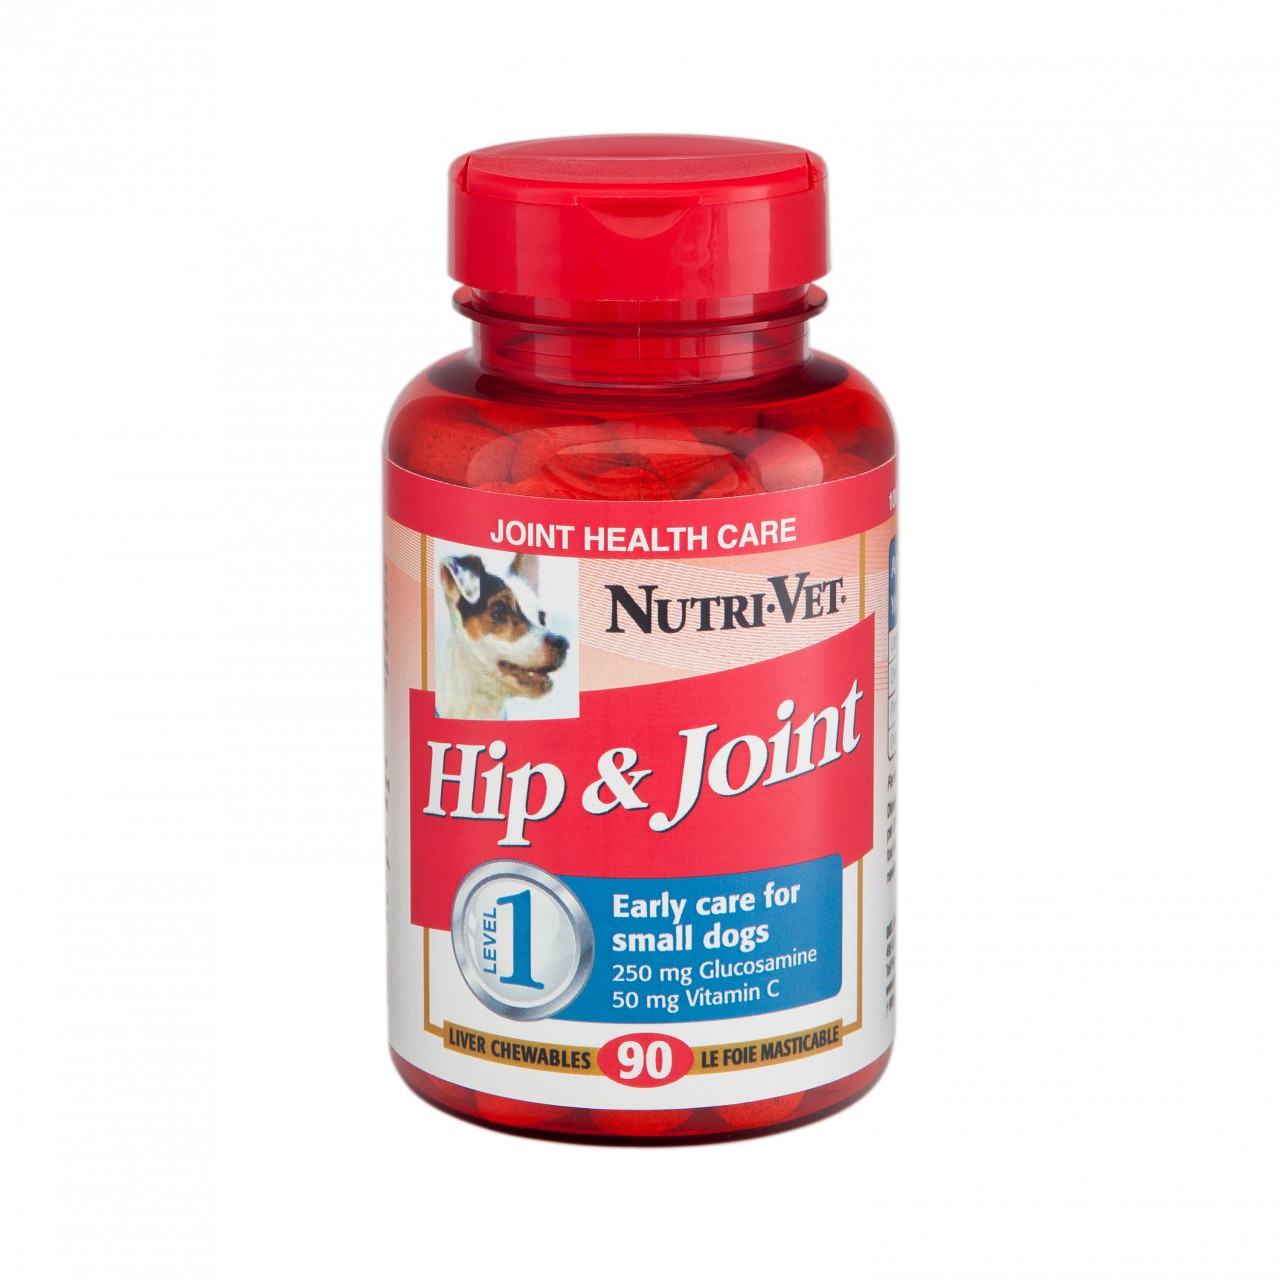 Nutri-Vet Hip & Joint Level 1 Chewables for Small Dogs